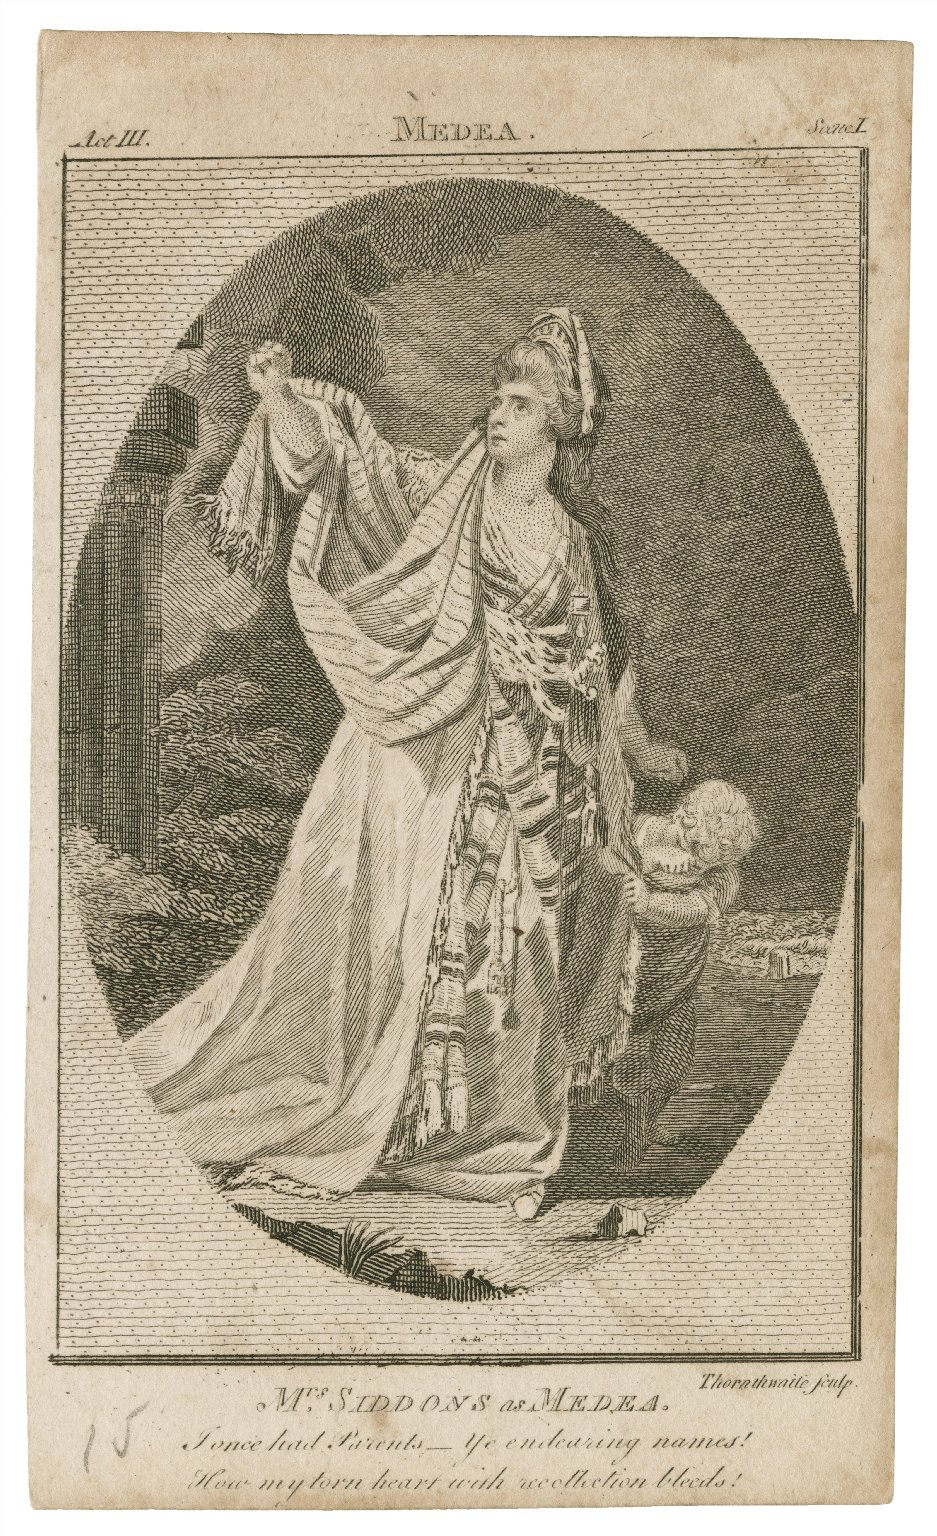 Mrs. Siddons as Medea [in Glover's Medea] act III, scene I: I once had parents -- Ye endearing names! ... [graphic] / Thornthwaite Sculp.